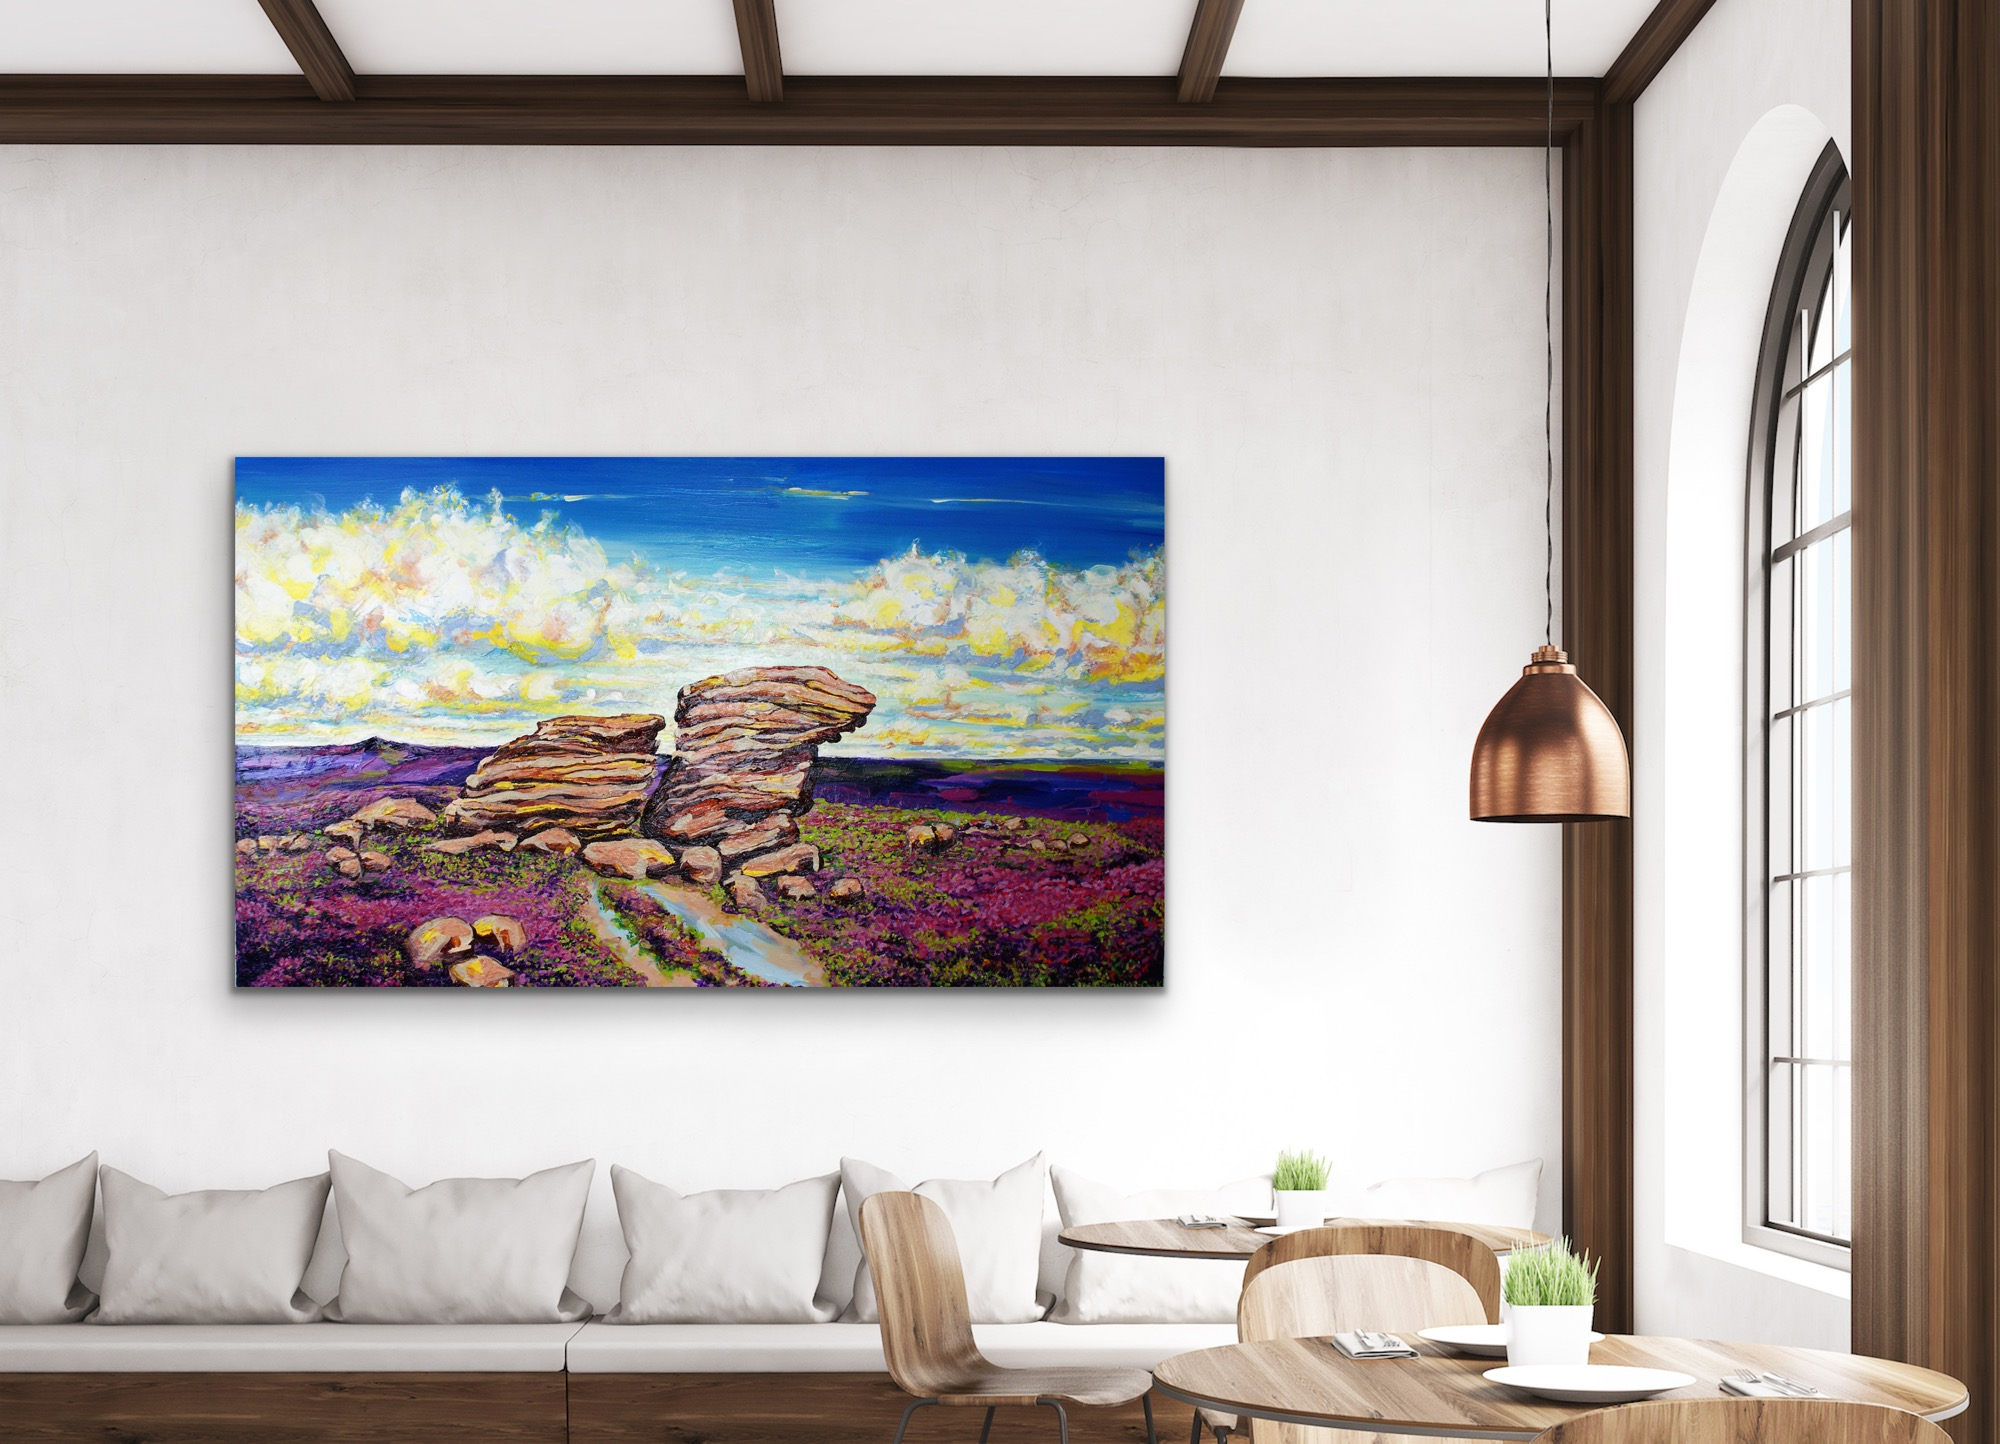 High Summer – Ox Stones in the morning light, clouds dance with the purple heather, in a room